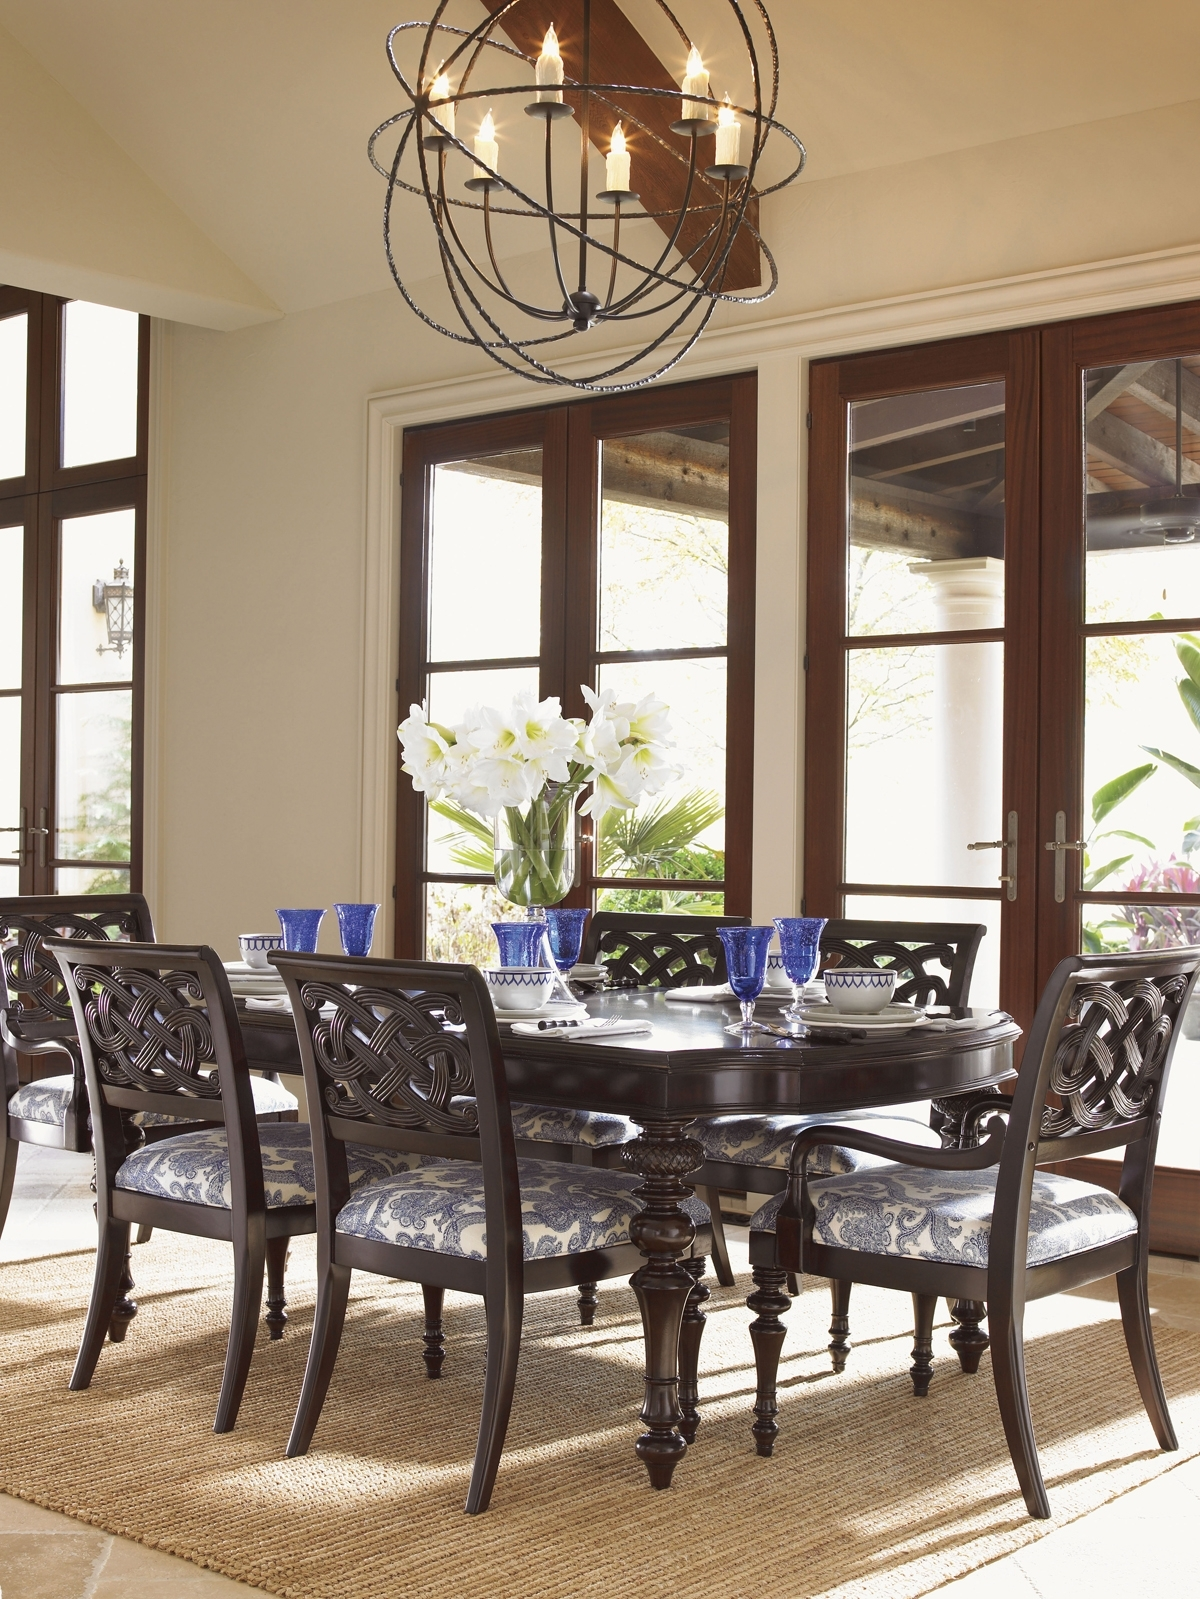 Lexington Home Brands Throughout Widely Used Royal Dining Tables (View 9 of 25)